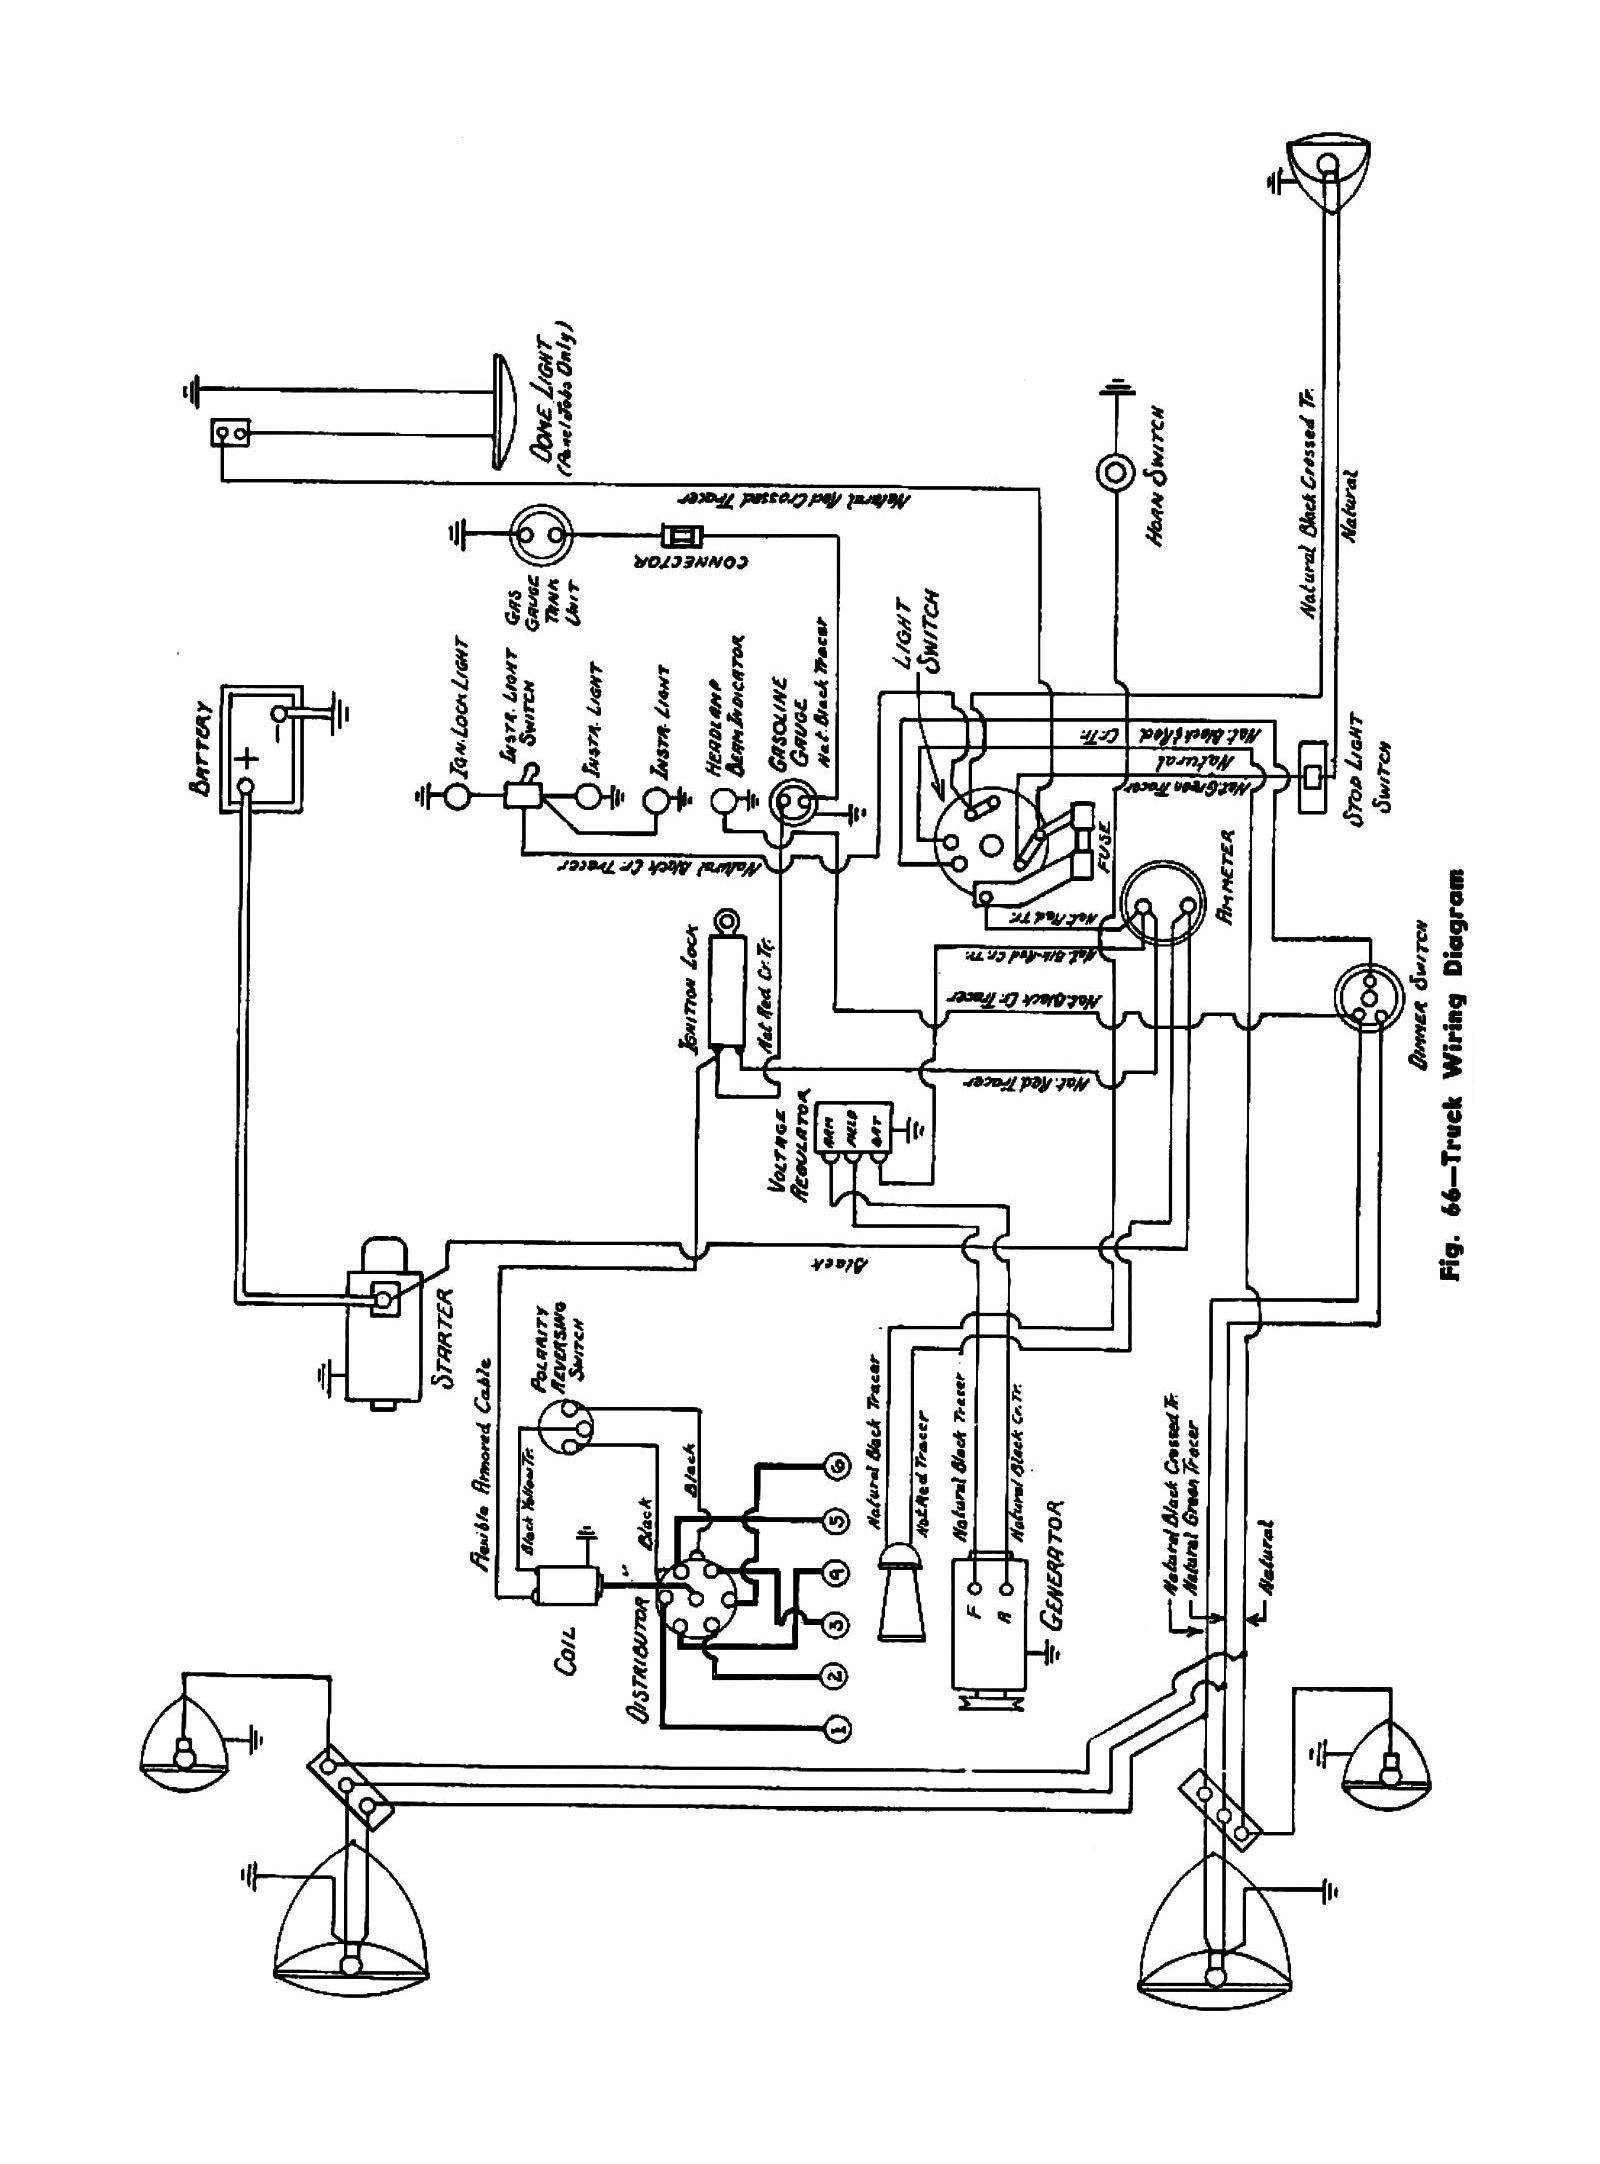 1946_Chevy_wiring_diagram on Small Block Chevy Starter Wiring Diagram